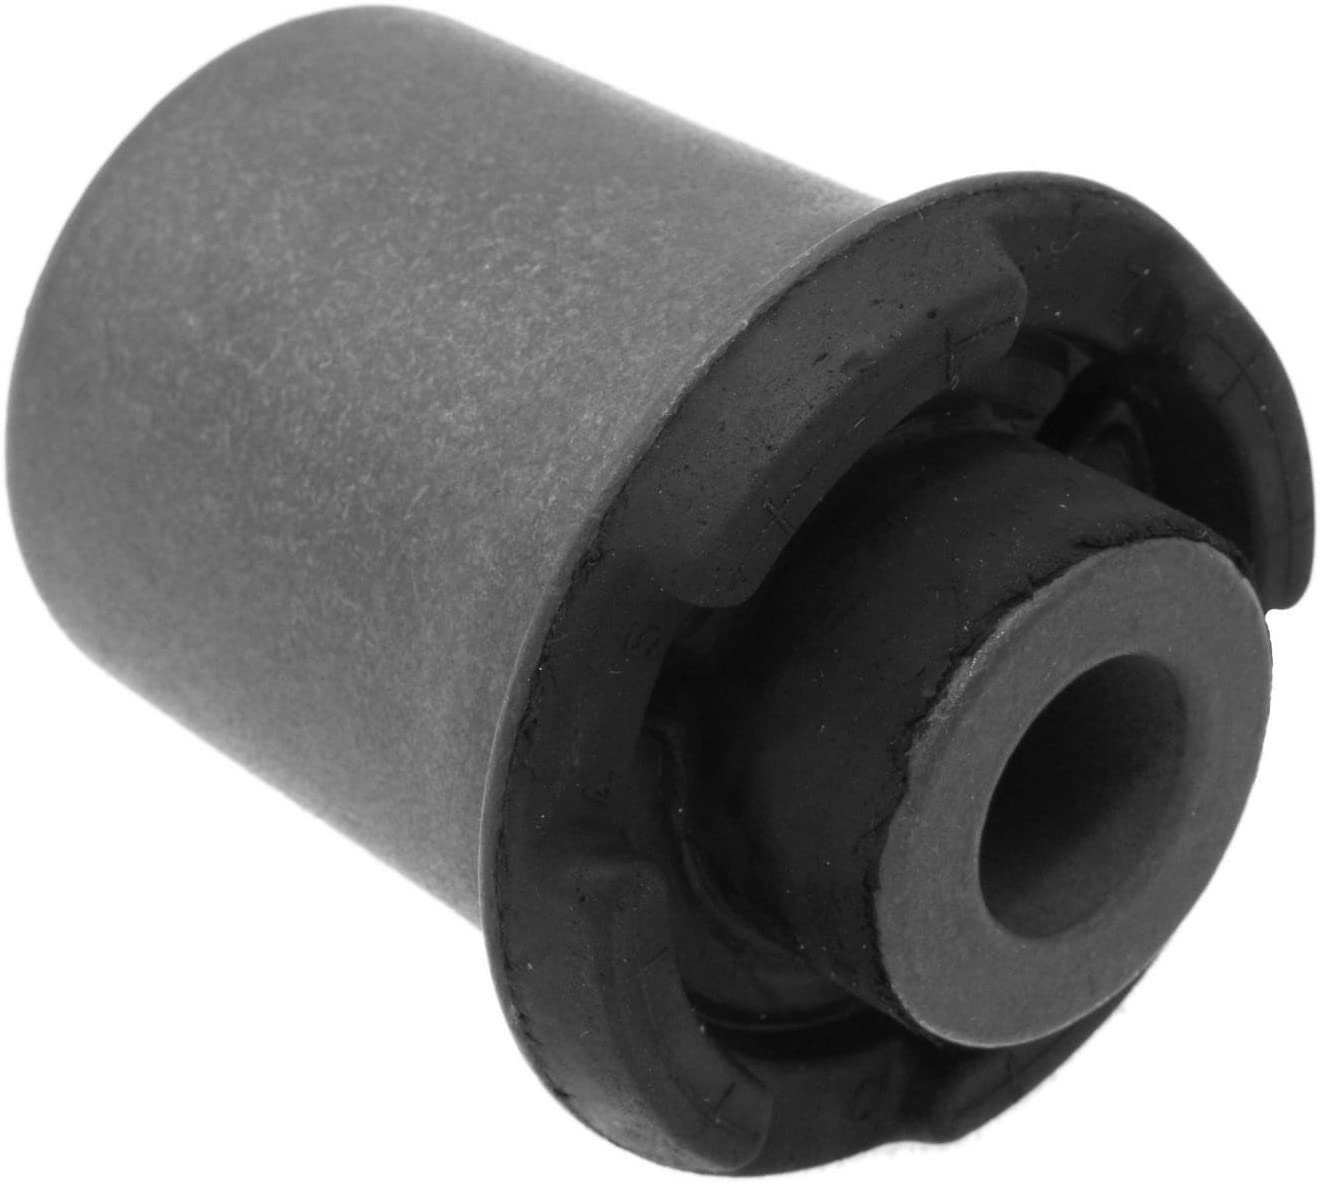 Rear Arm Bushing Mr112711 For Mitsubishi for Lower Control Arm